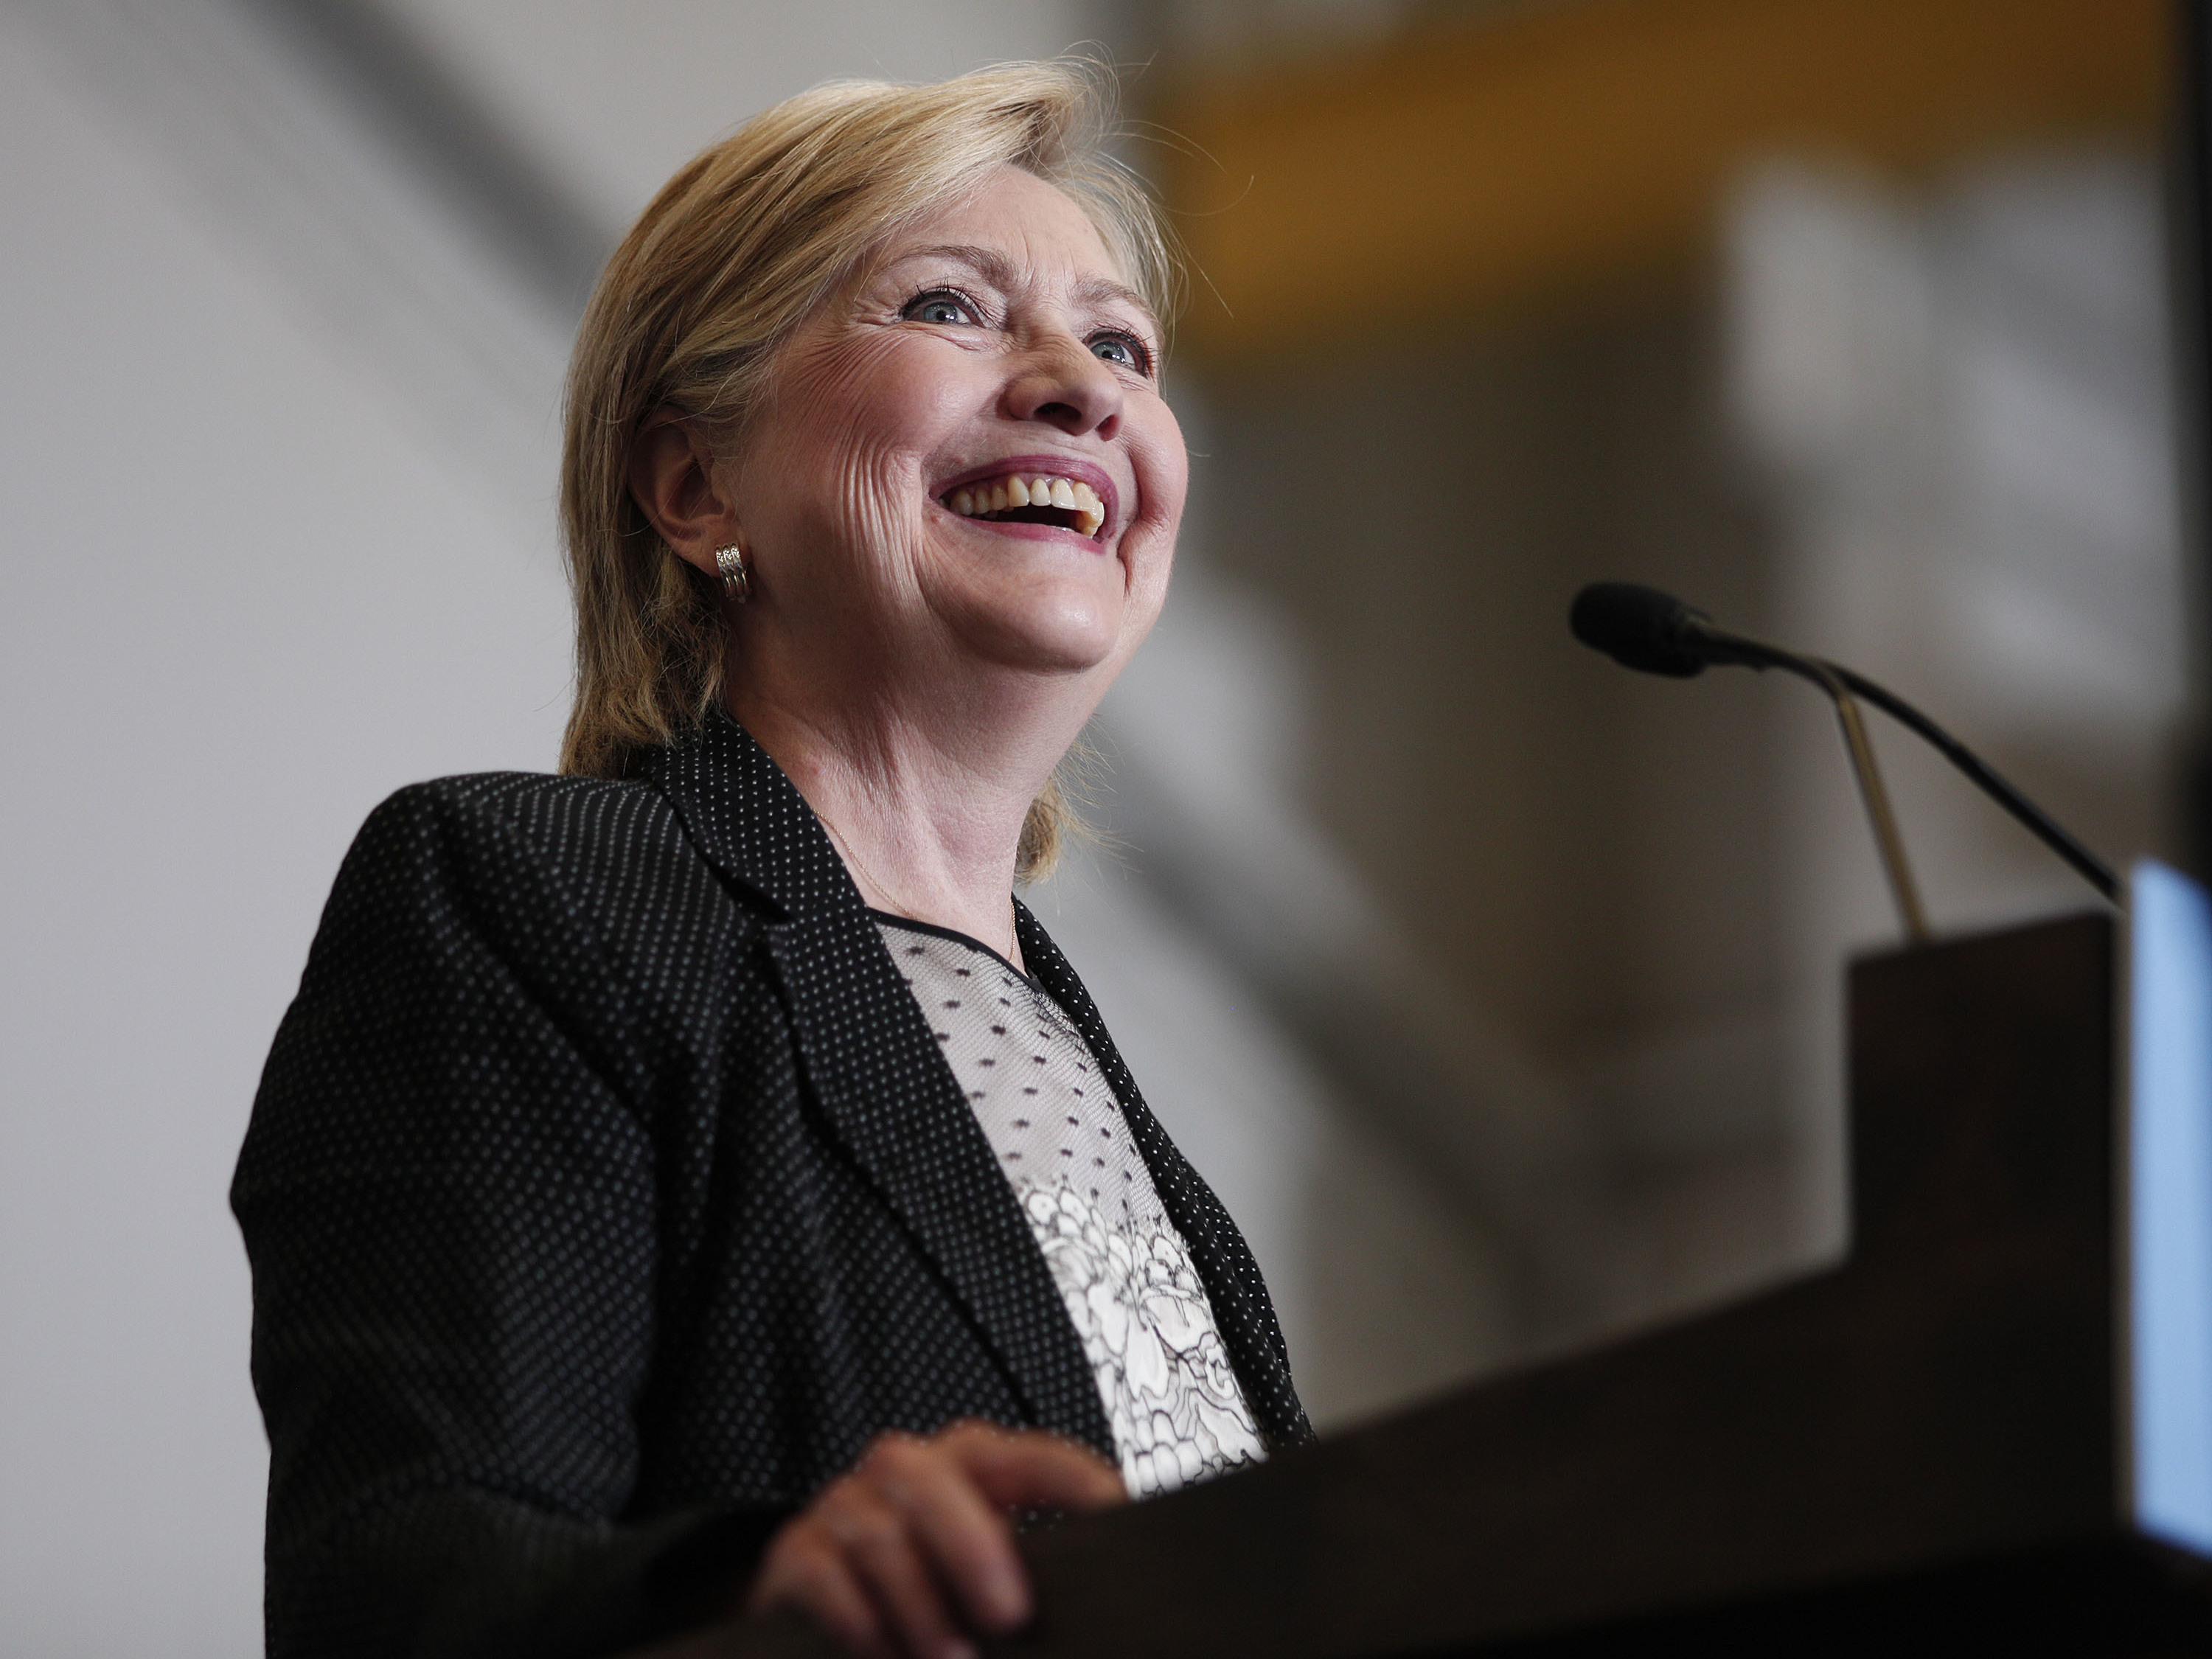 Hillary Clinton releases tax returns, putting ball in Donald Trump's court